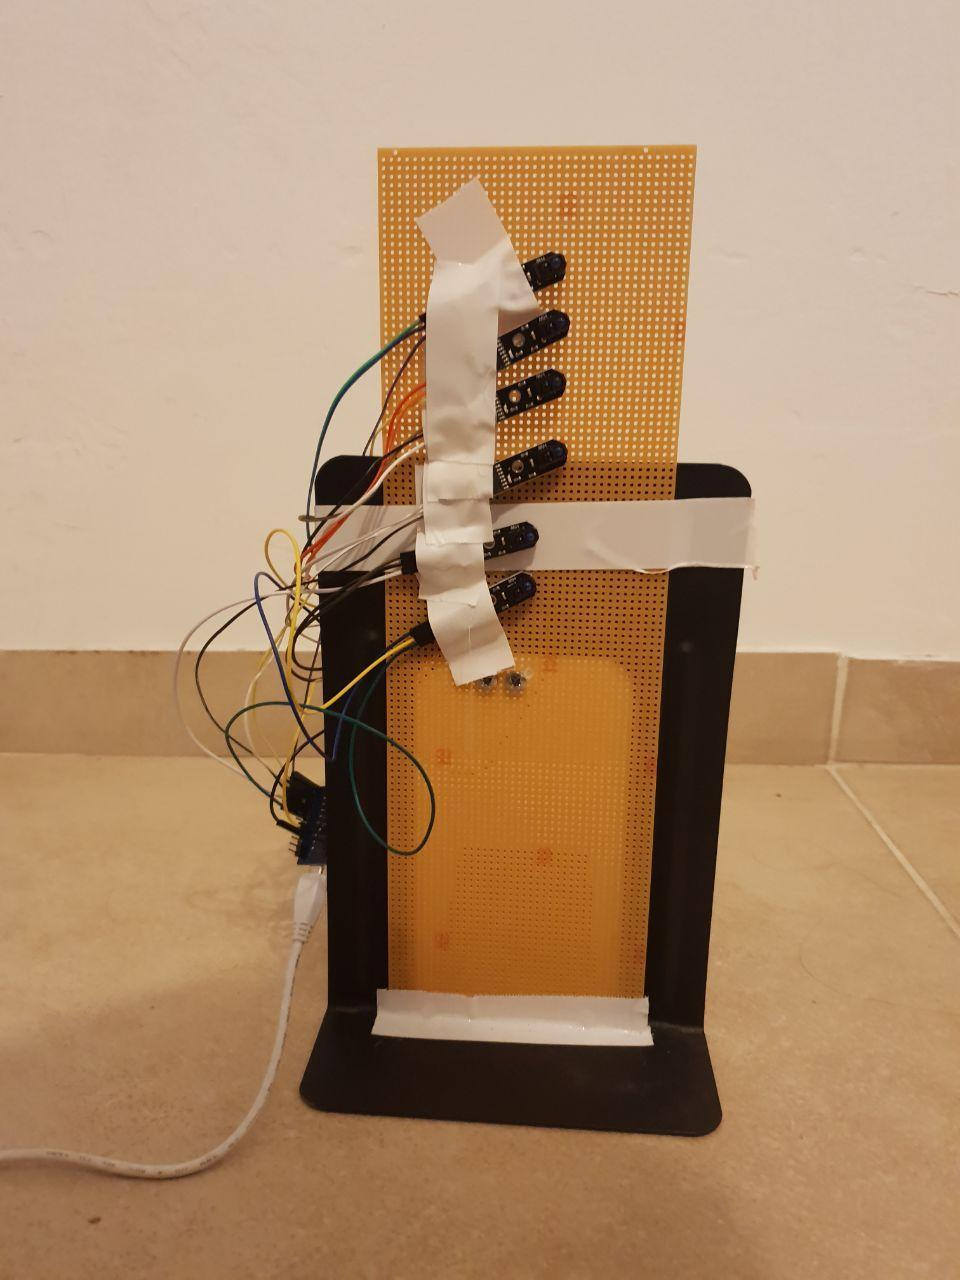 Place All the Sensors on Anything That Can Hold It Vertically.